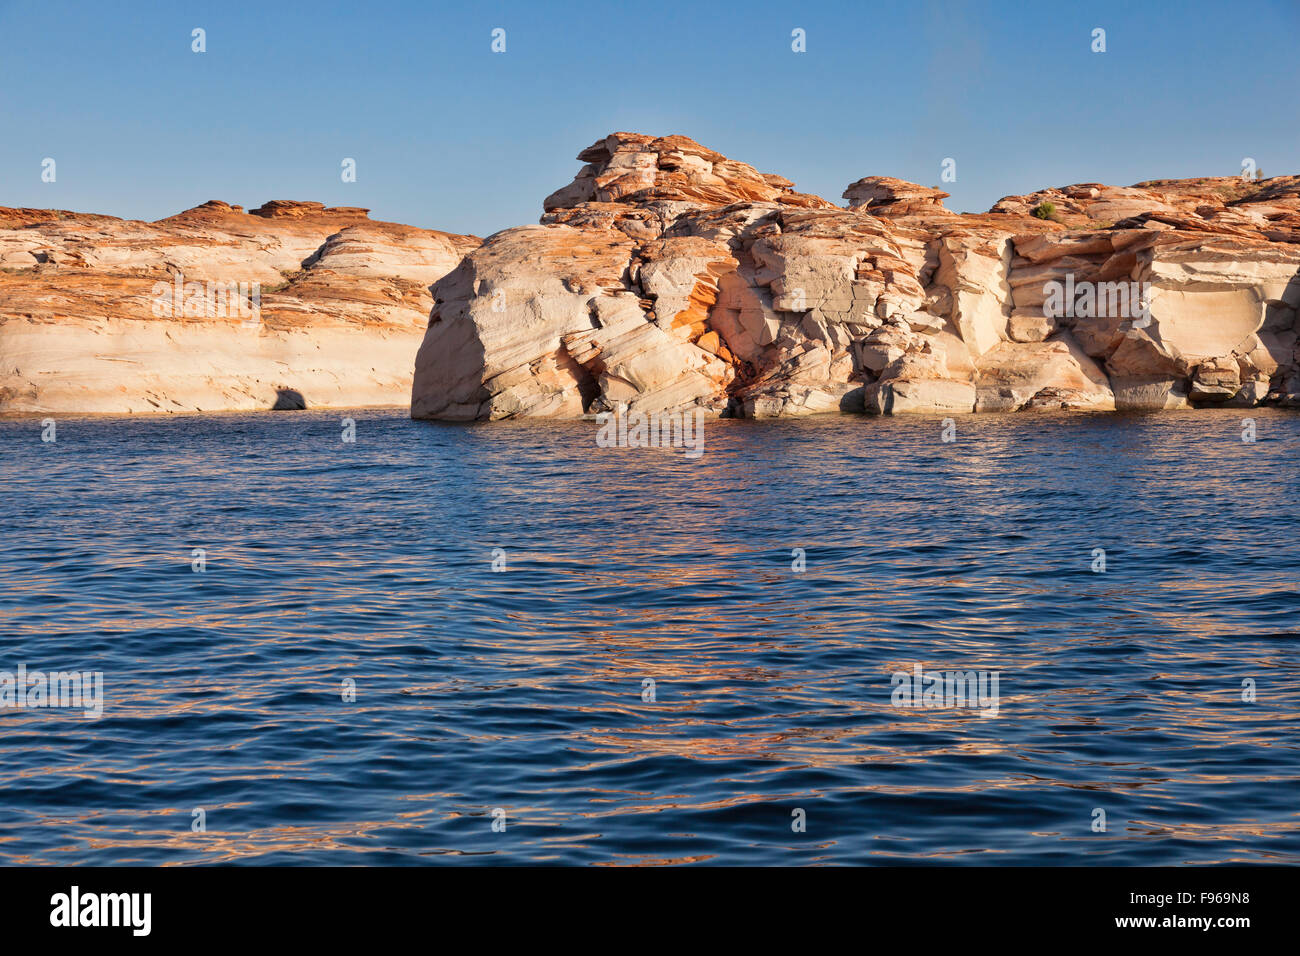 lake powell online dating Petroglyphs are rock carvings, etchings or stippled peckings that can date back   of the approximately 4 million visitors to lake powell every year, a significant.